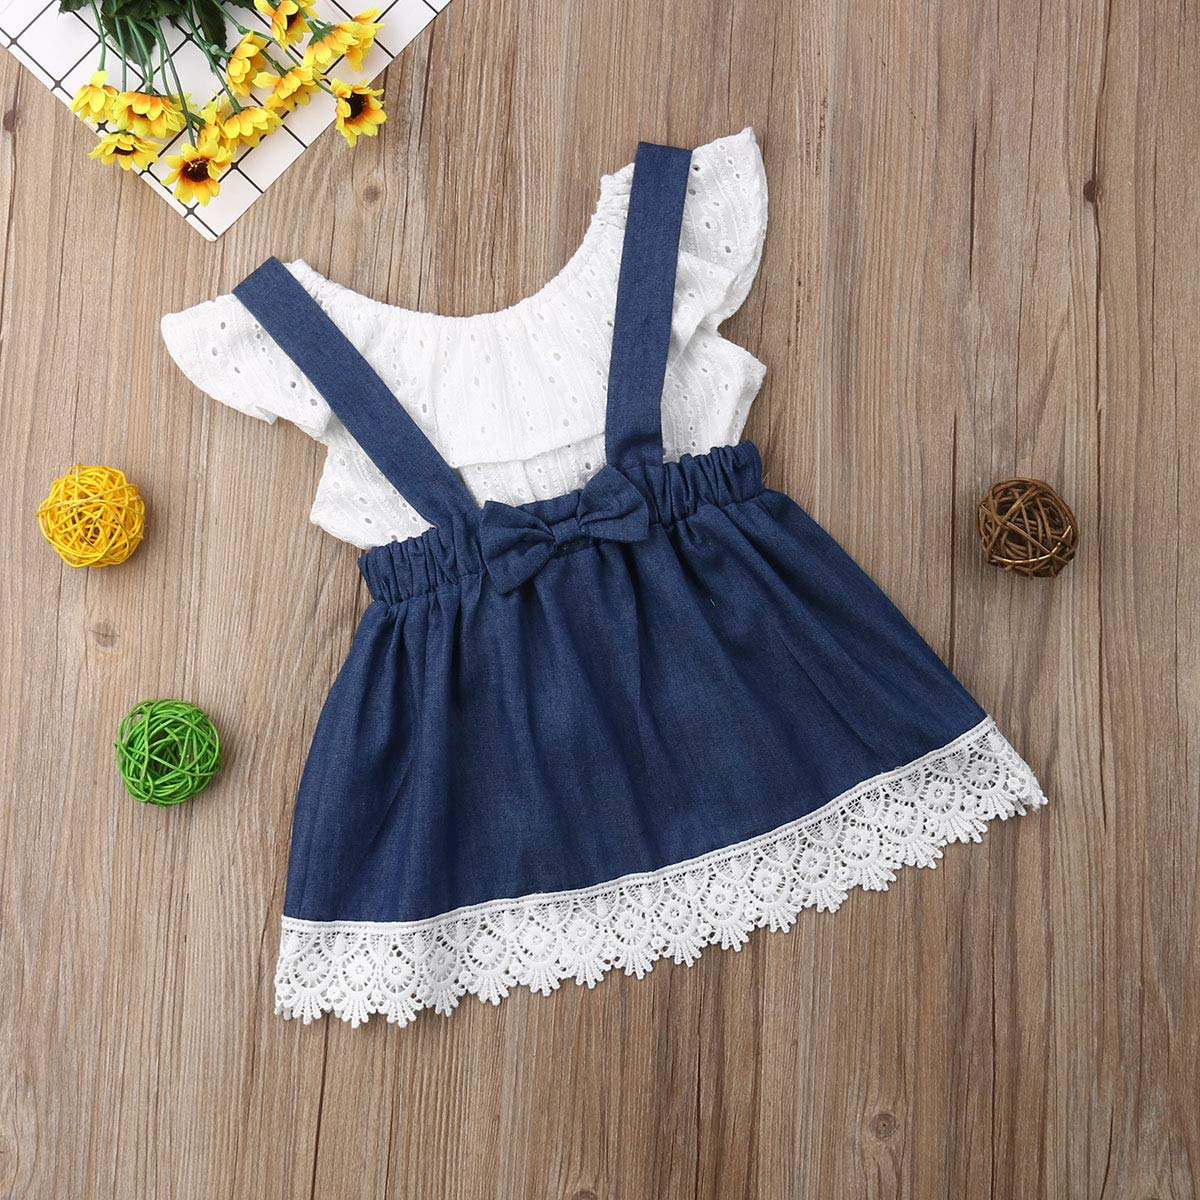 Toddler Newborn Kid Baby Girl Summer 2Pcs Clothing Set Off Shoulder T Shirt Lace Denim Overalls Skirt Outfits Clothes